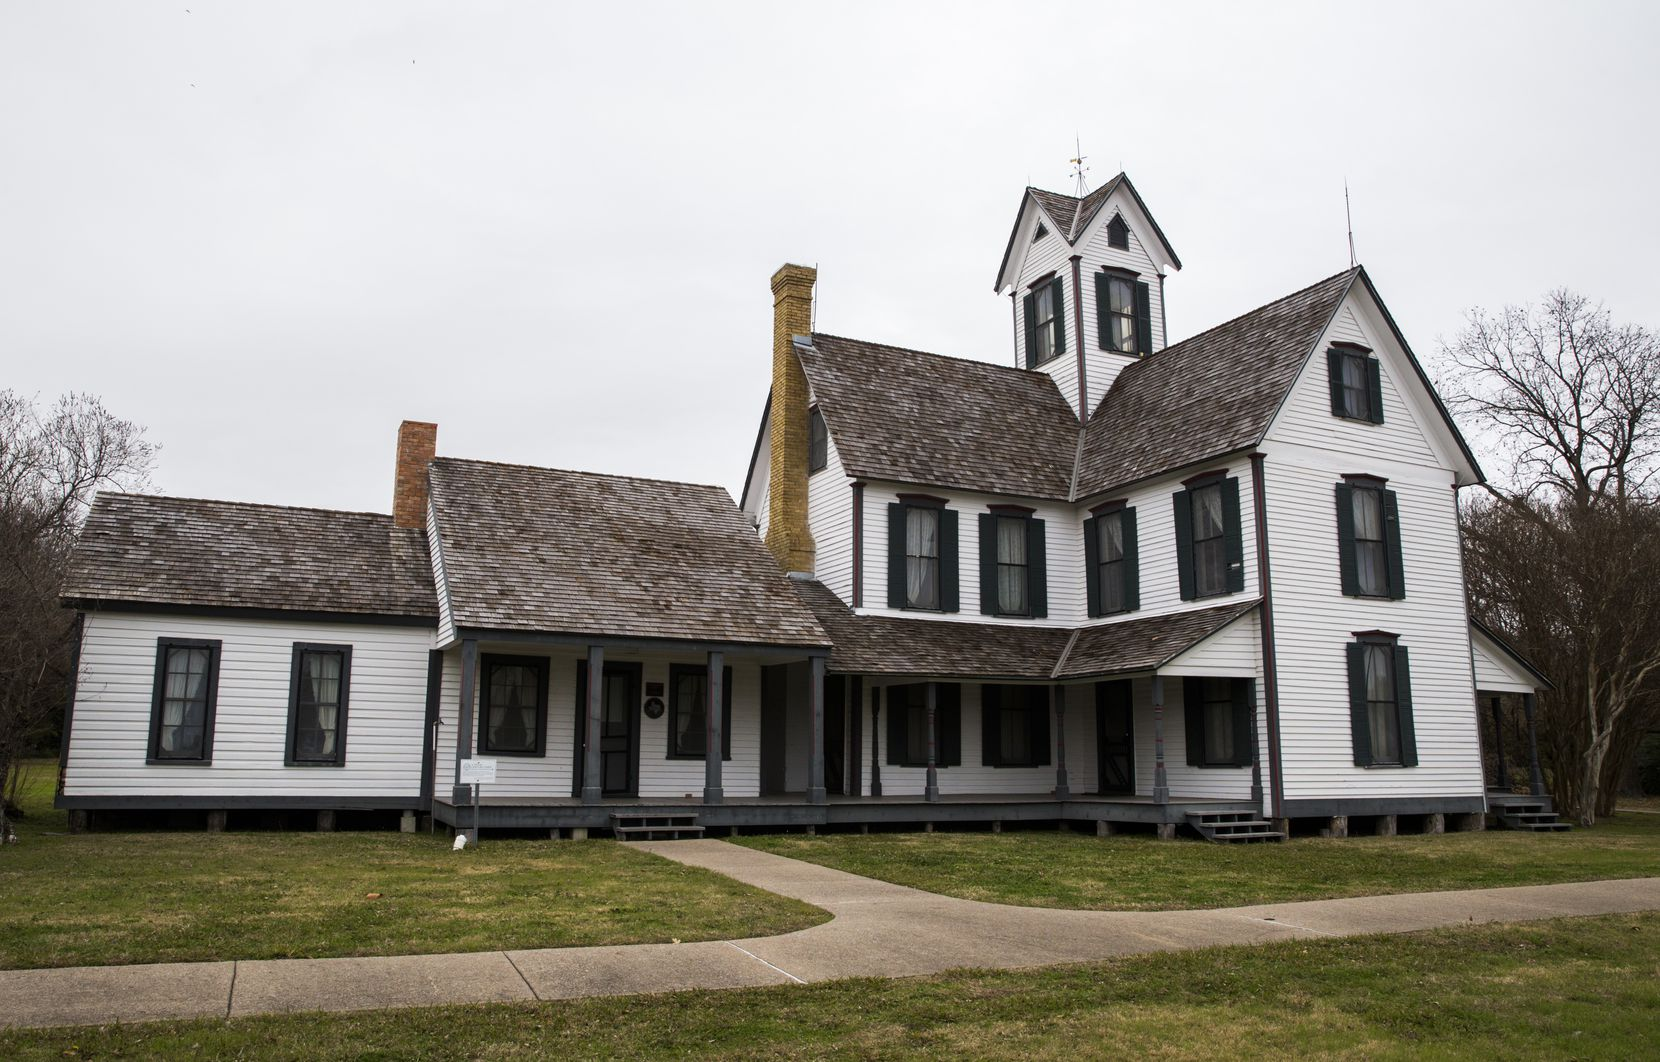 The Stephen Decatur Lawrence Farmstead, as photographed on Friday, December 20, 2019 at Opal Lawrence Historical Park in Mesquite. It was built in 1874.